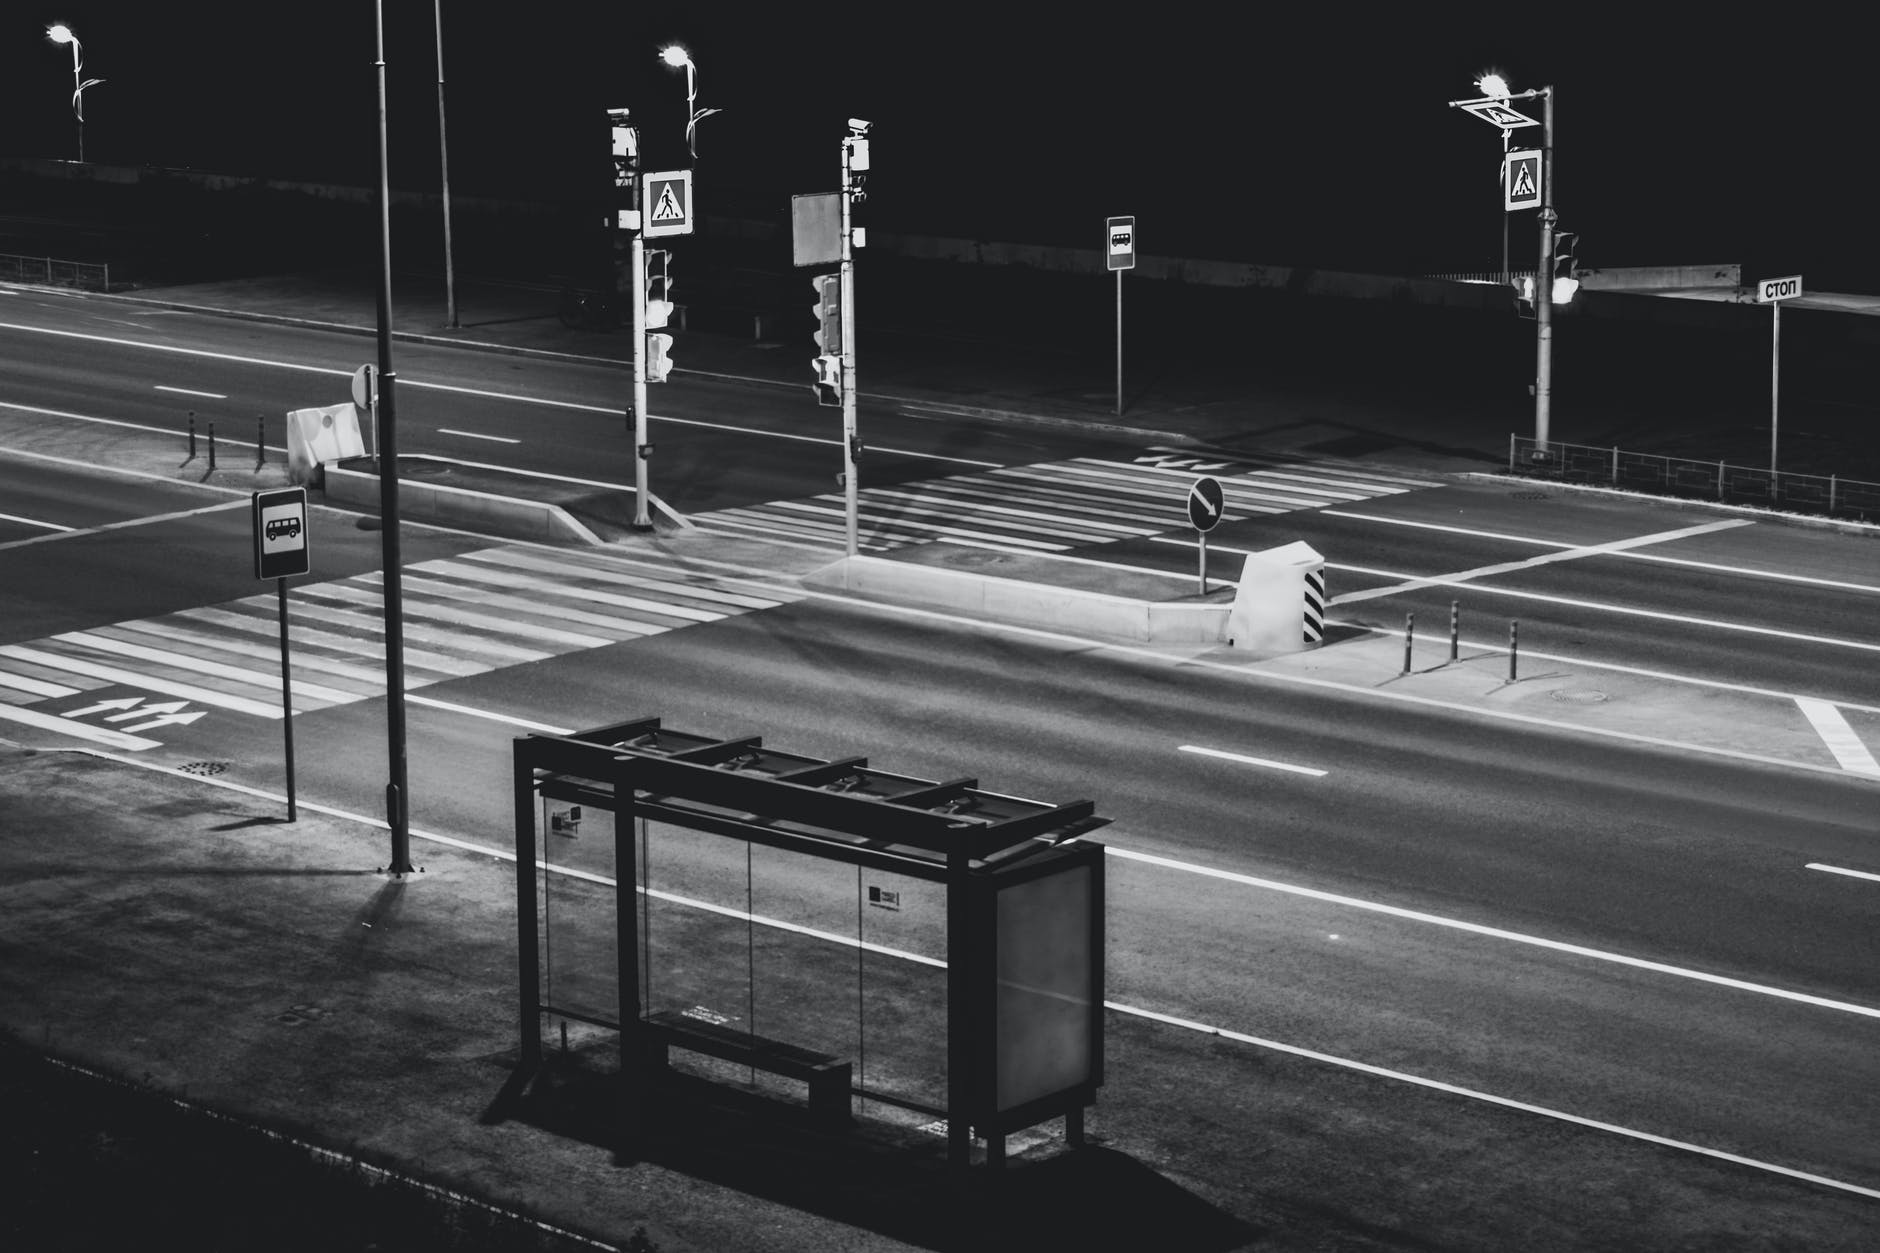 grayscale photography of waiting shed near open road at night